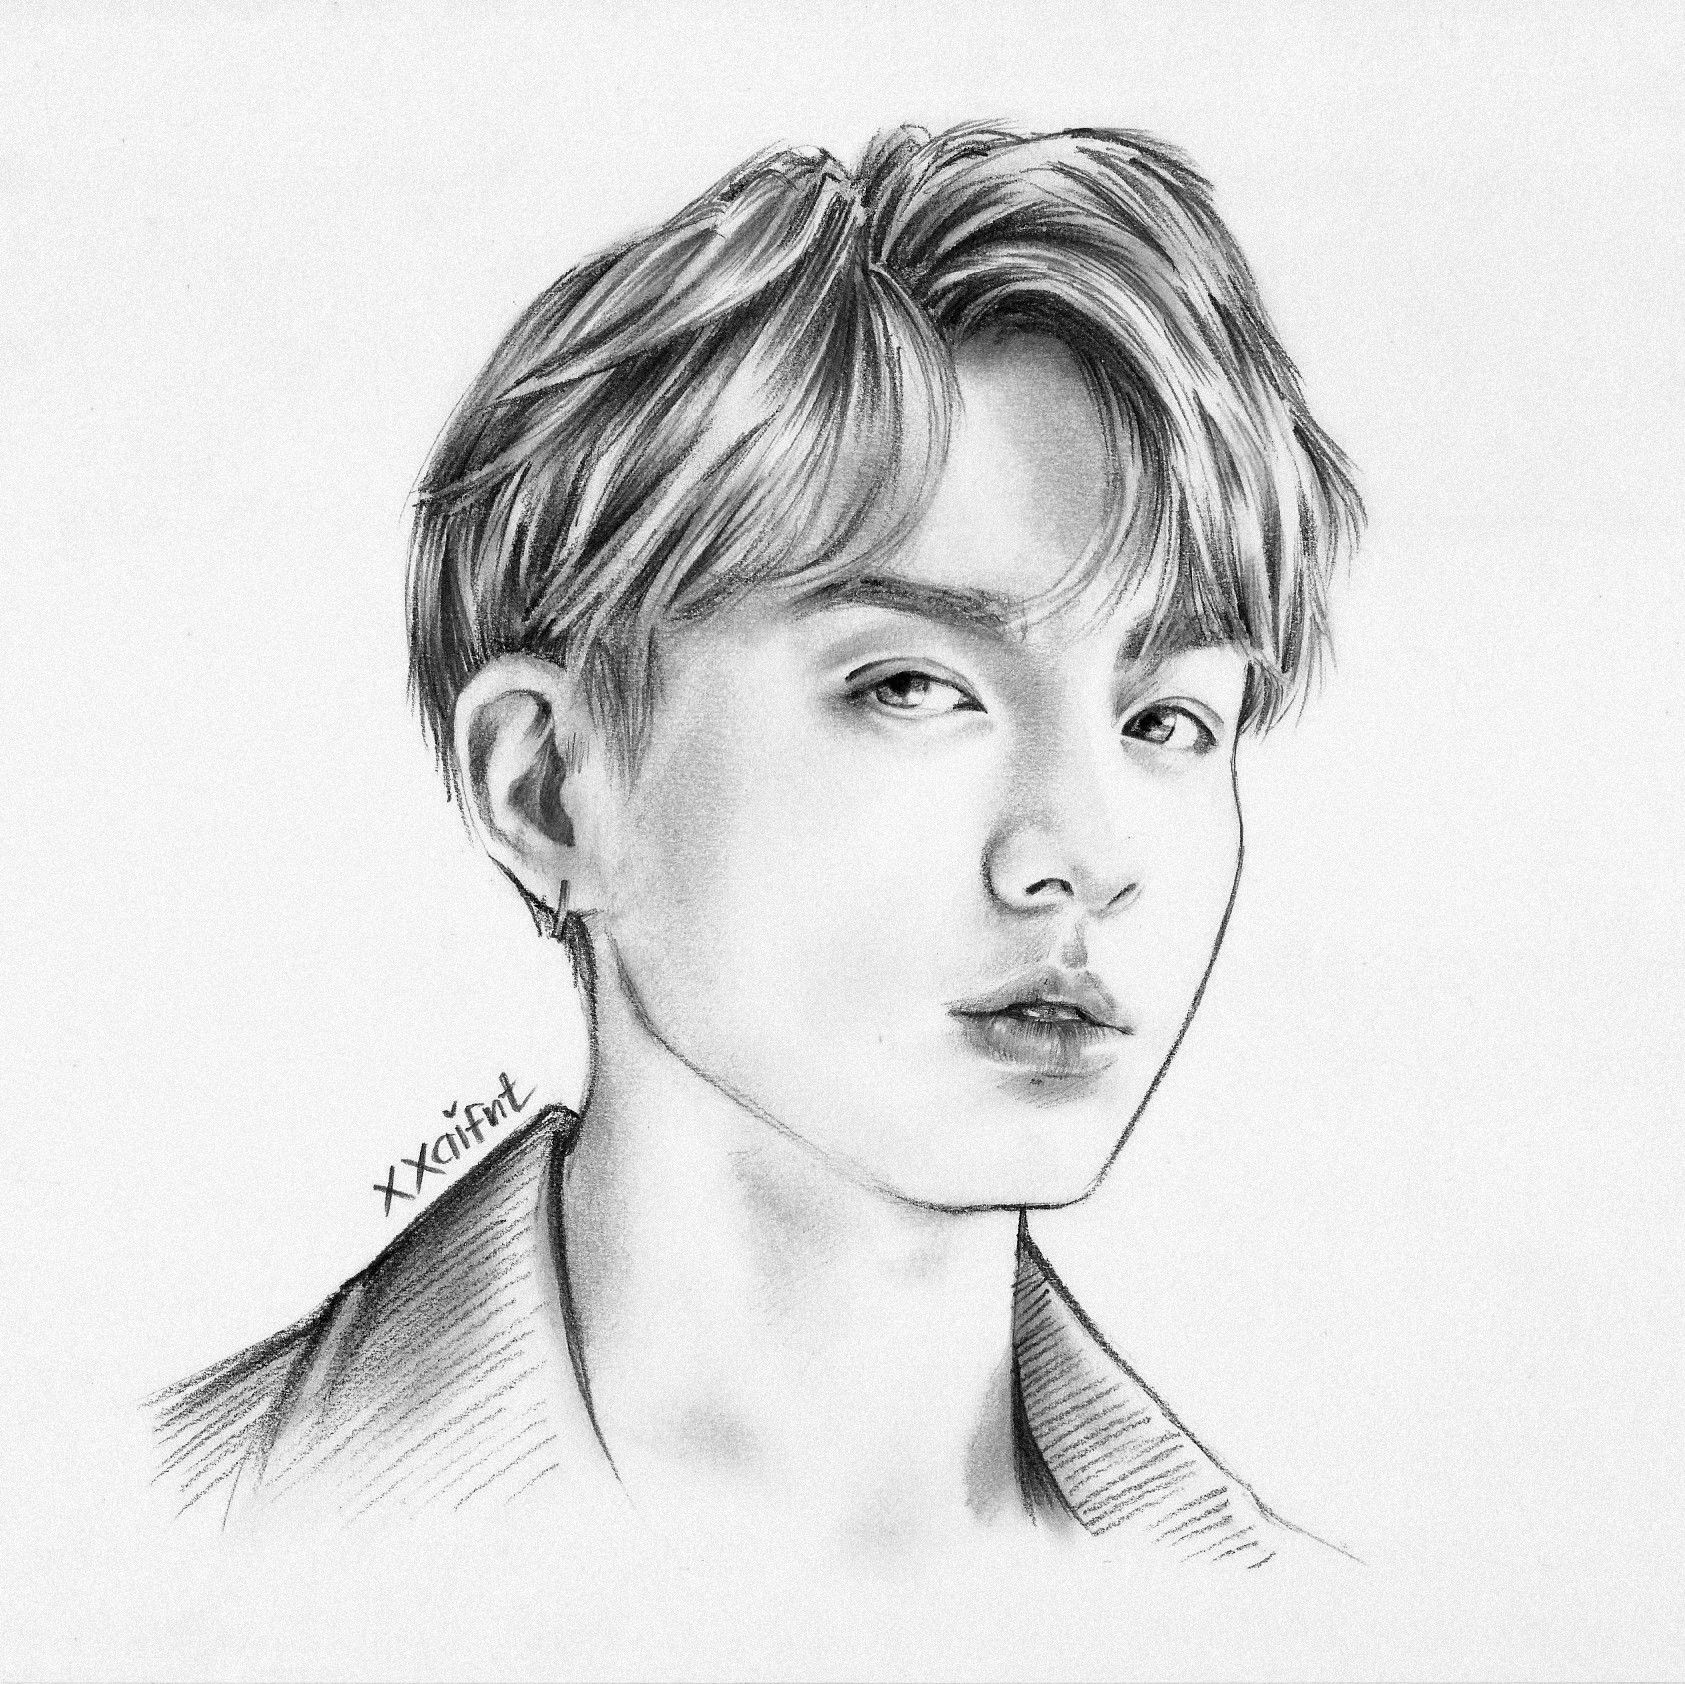 Jungkook DNA Drawing Graphite Drawing/sketch Scanned Version | BTS Fanarts In 2018 | Pinterest ...